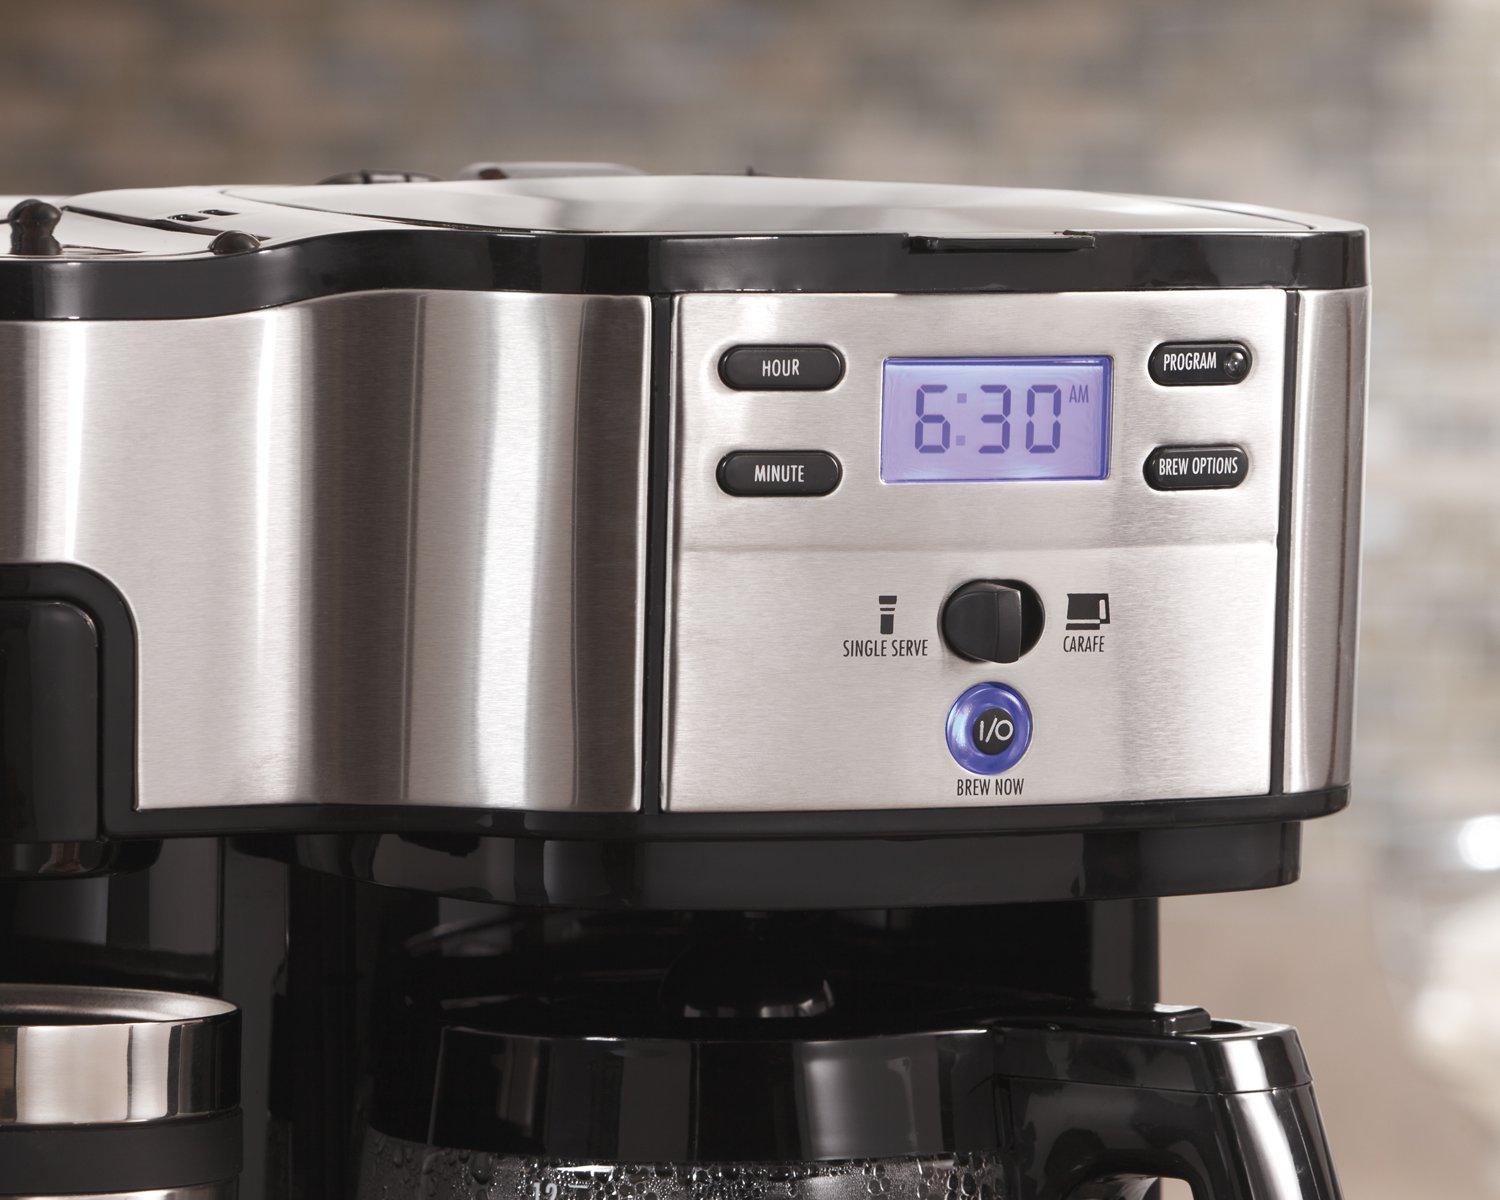 Hamilton Beach (49980A) Single Serve Coffee Maker and Coffee Pot Maker, Programmable, Black/Stainless Steel by Hamilton Beach (Image #5)